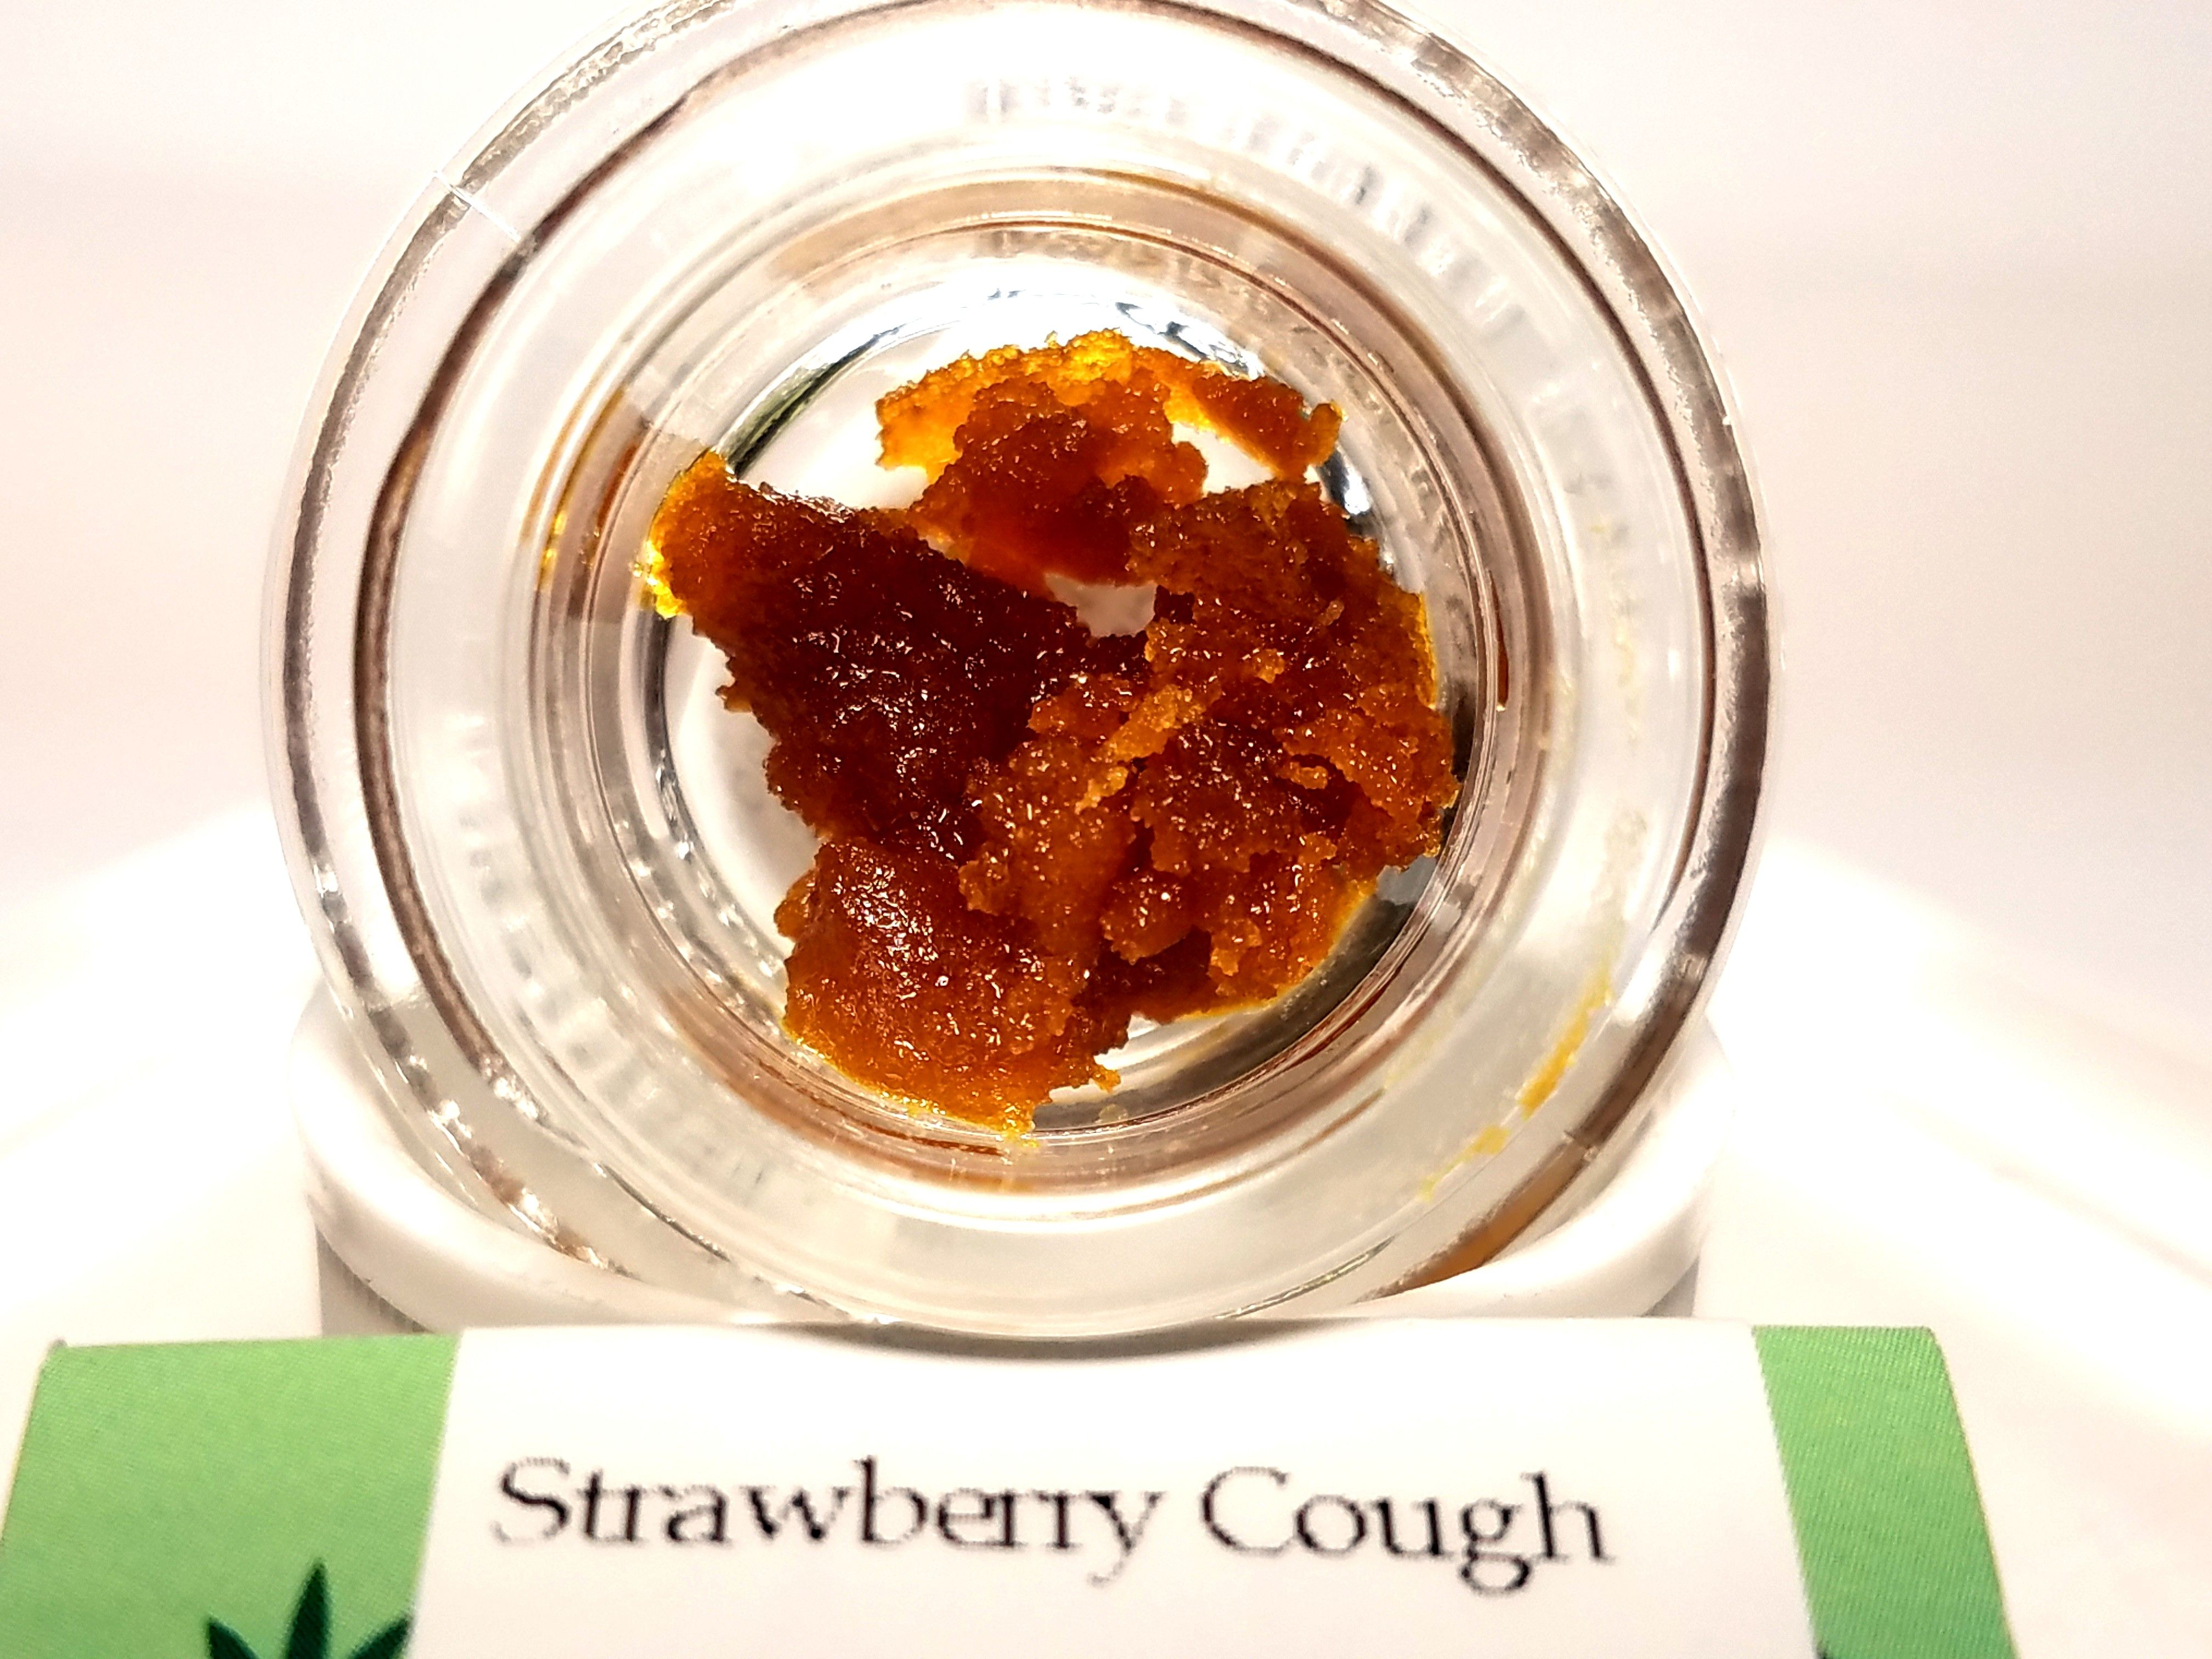 Bobsled - Strawberry Cough, Sativa, Live Resin